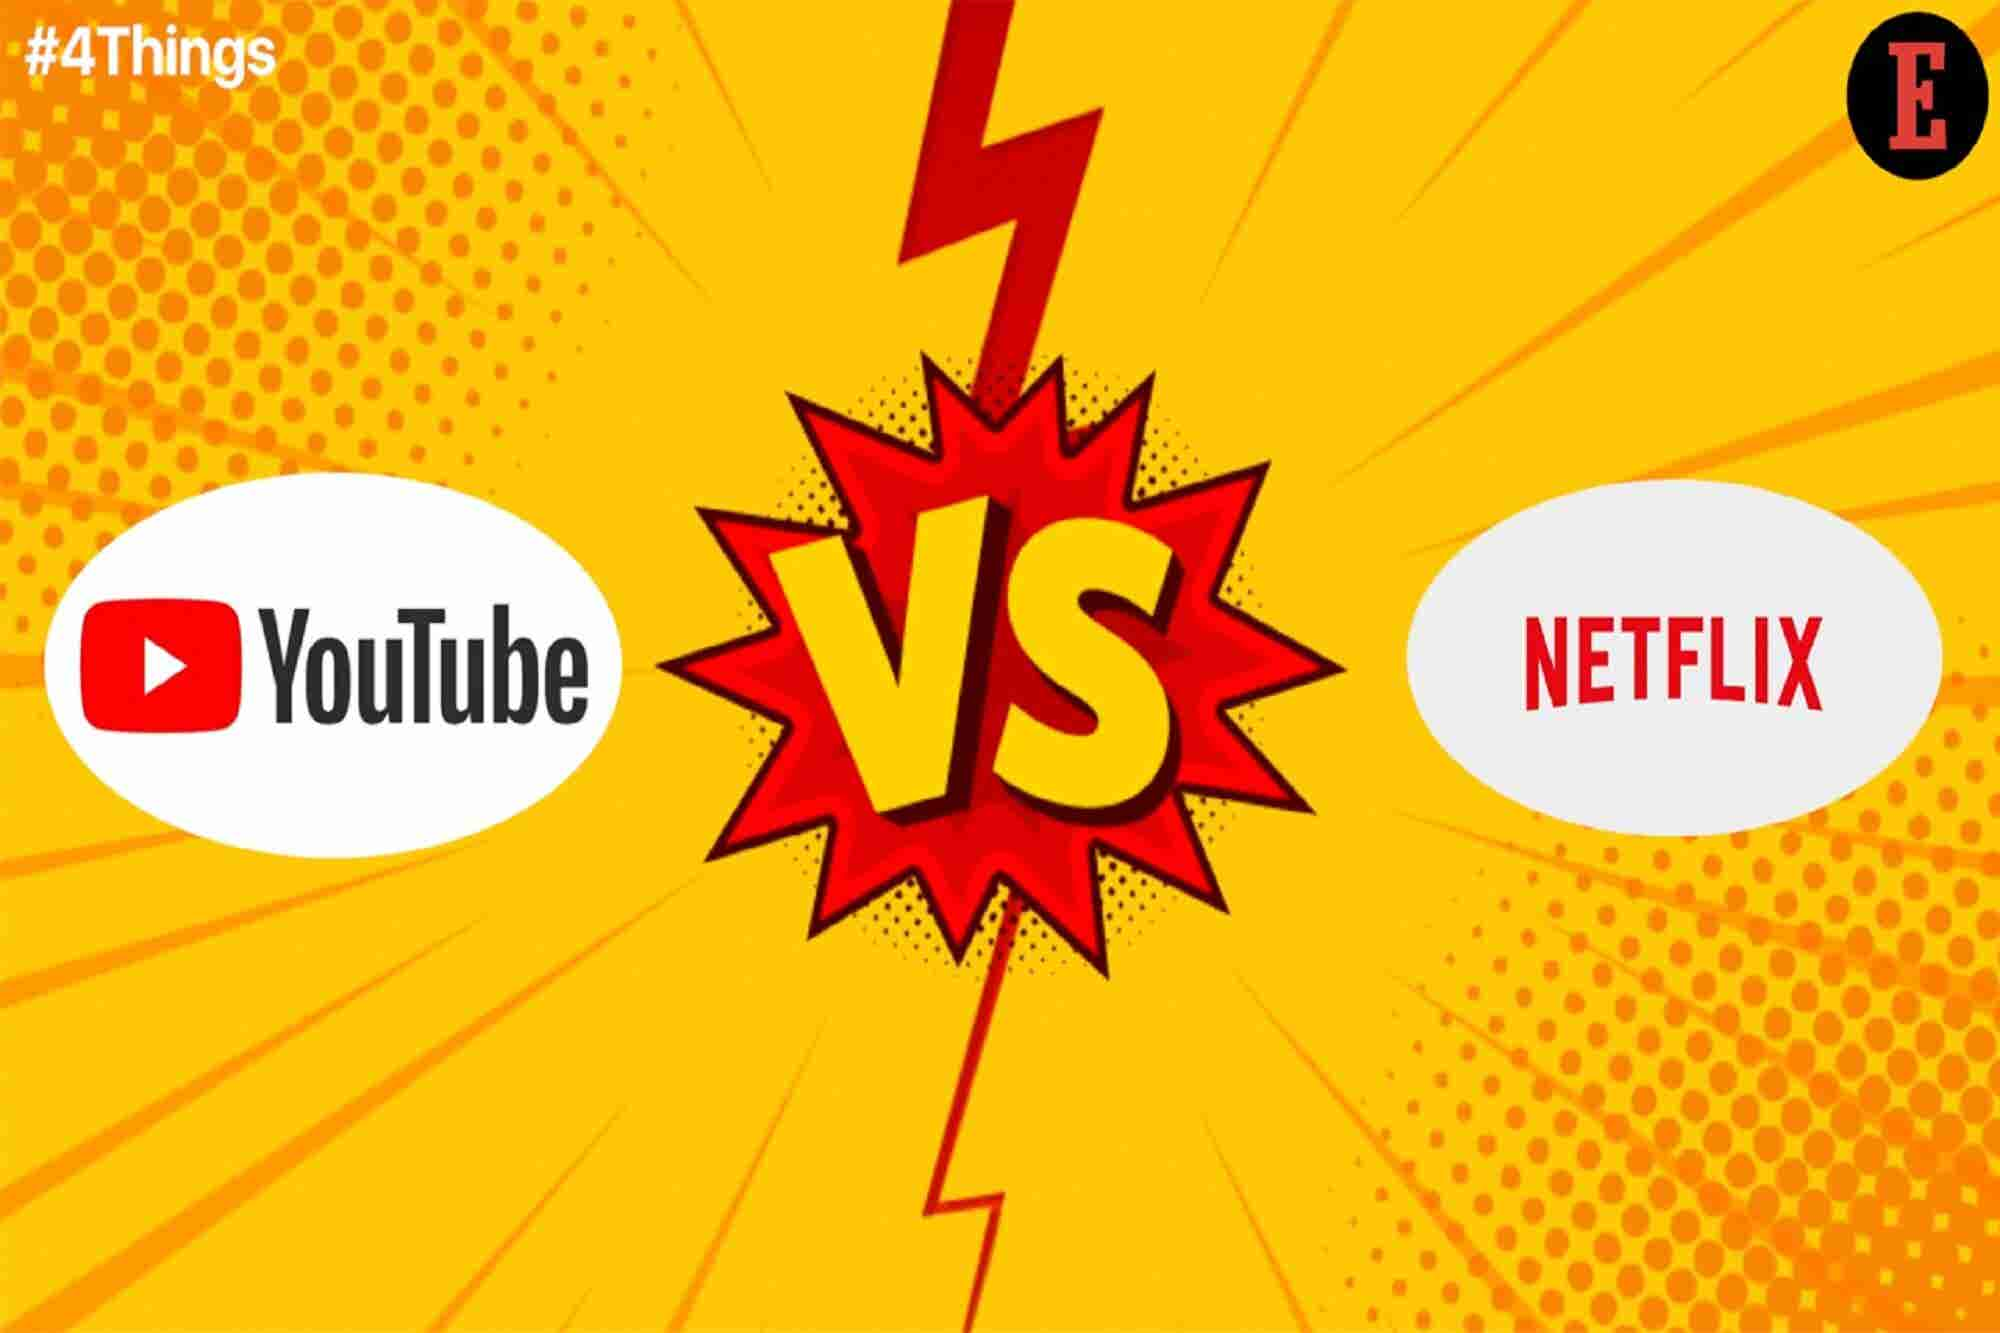 Beyond India: YouTube's Subscription-free Plan & Hackers' New Target